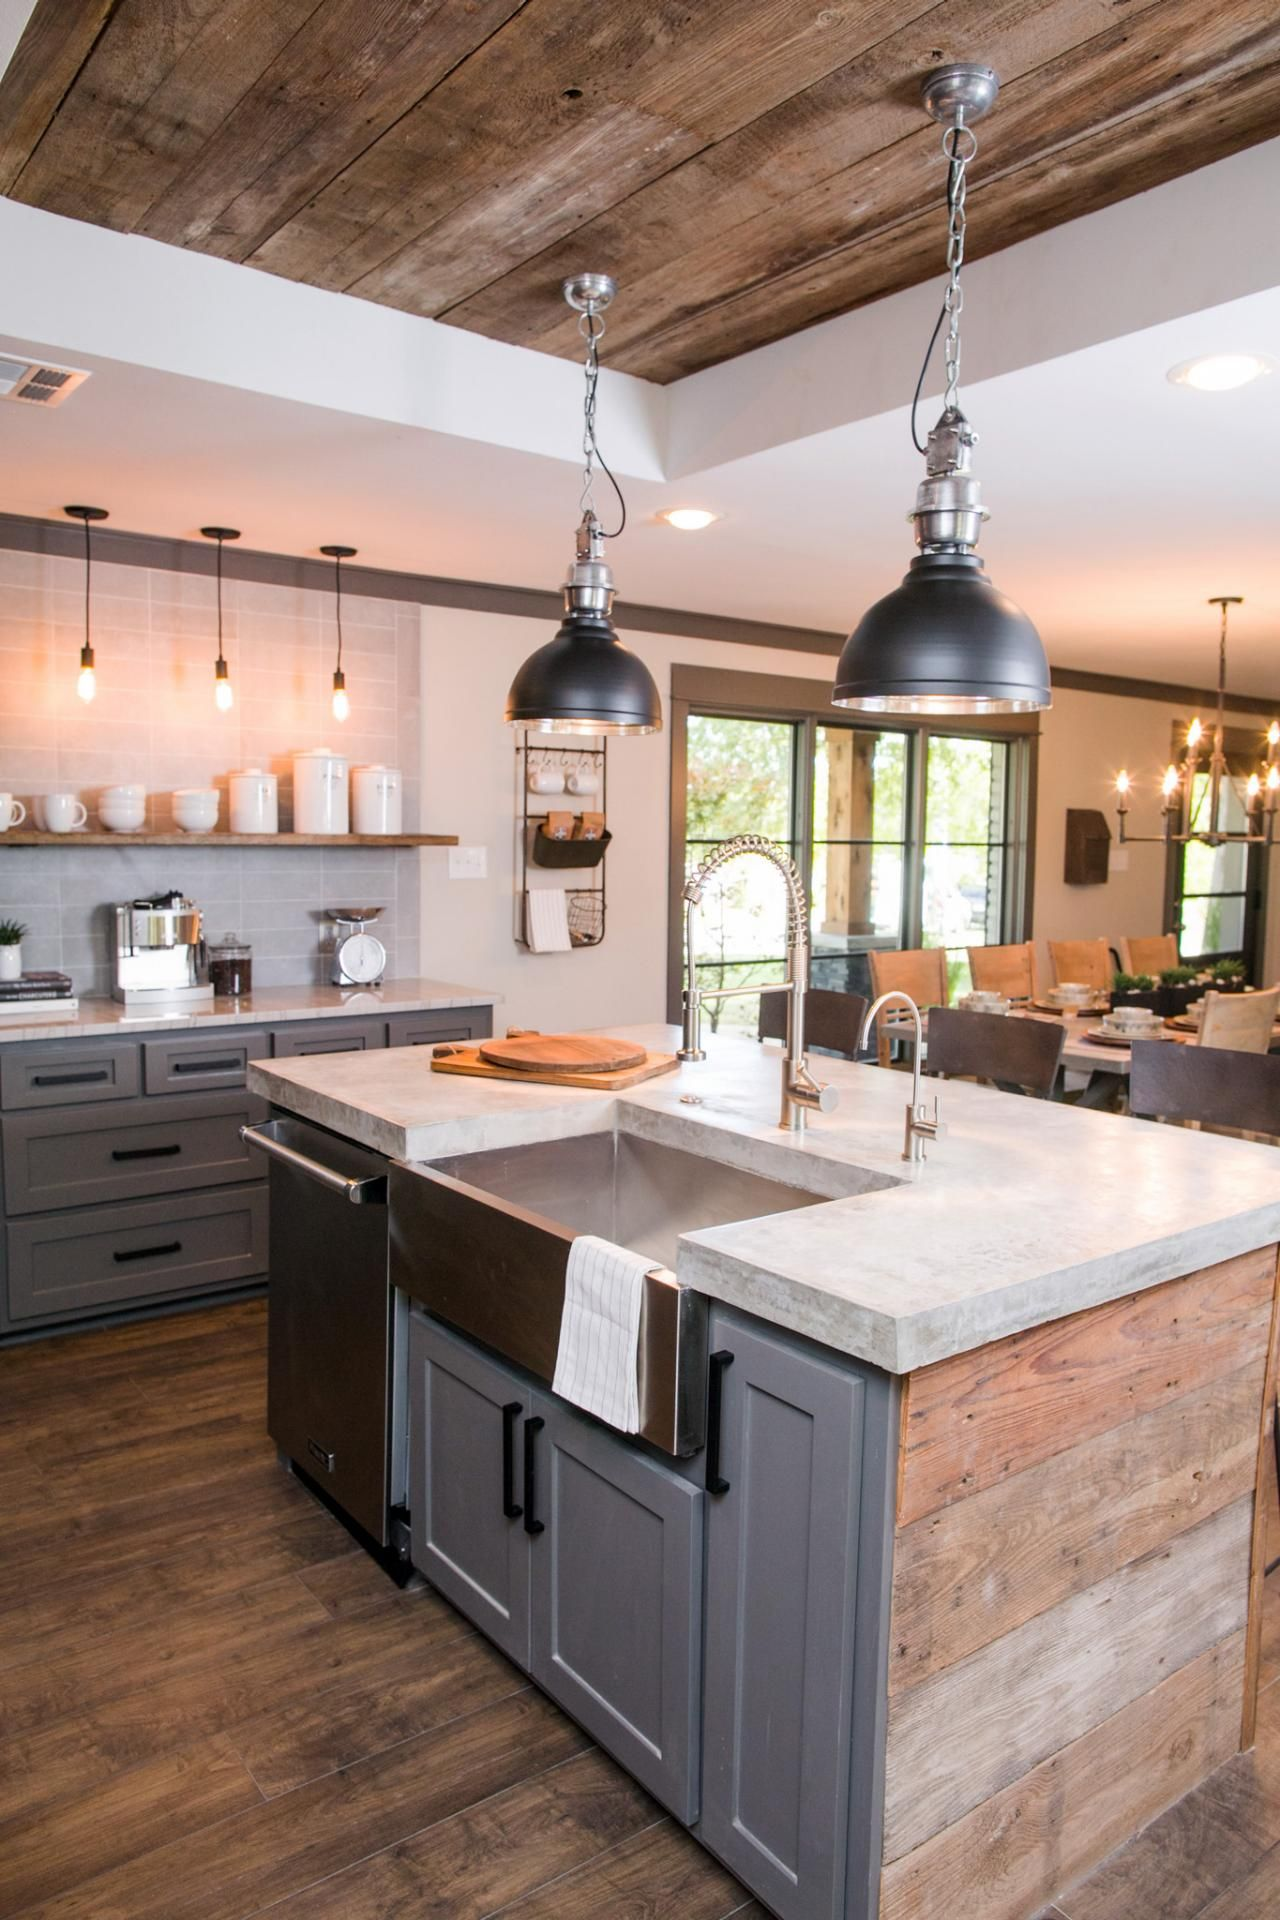 Fixer Upper Design Tips: A Waco Bachelor Pad Reno | Decorating · Double  Islands In KitchenKitchen ...